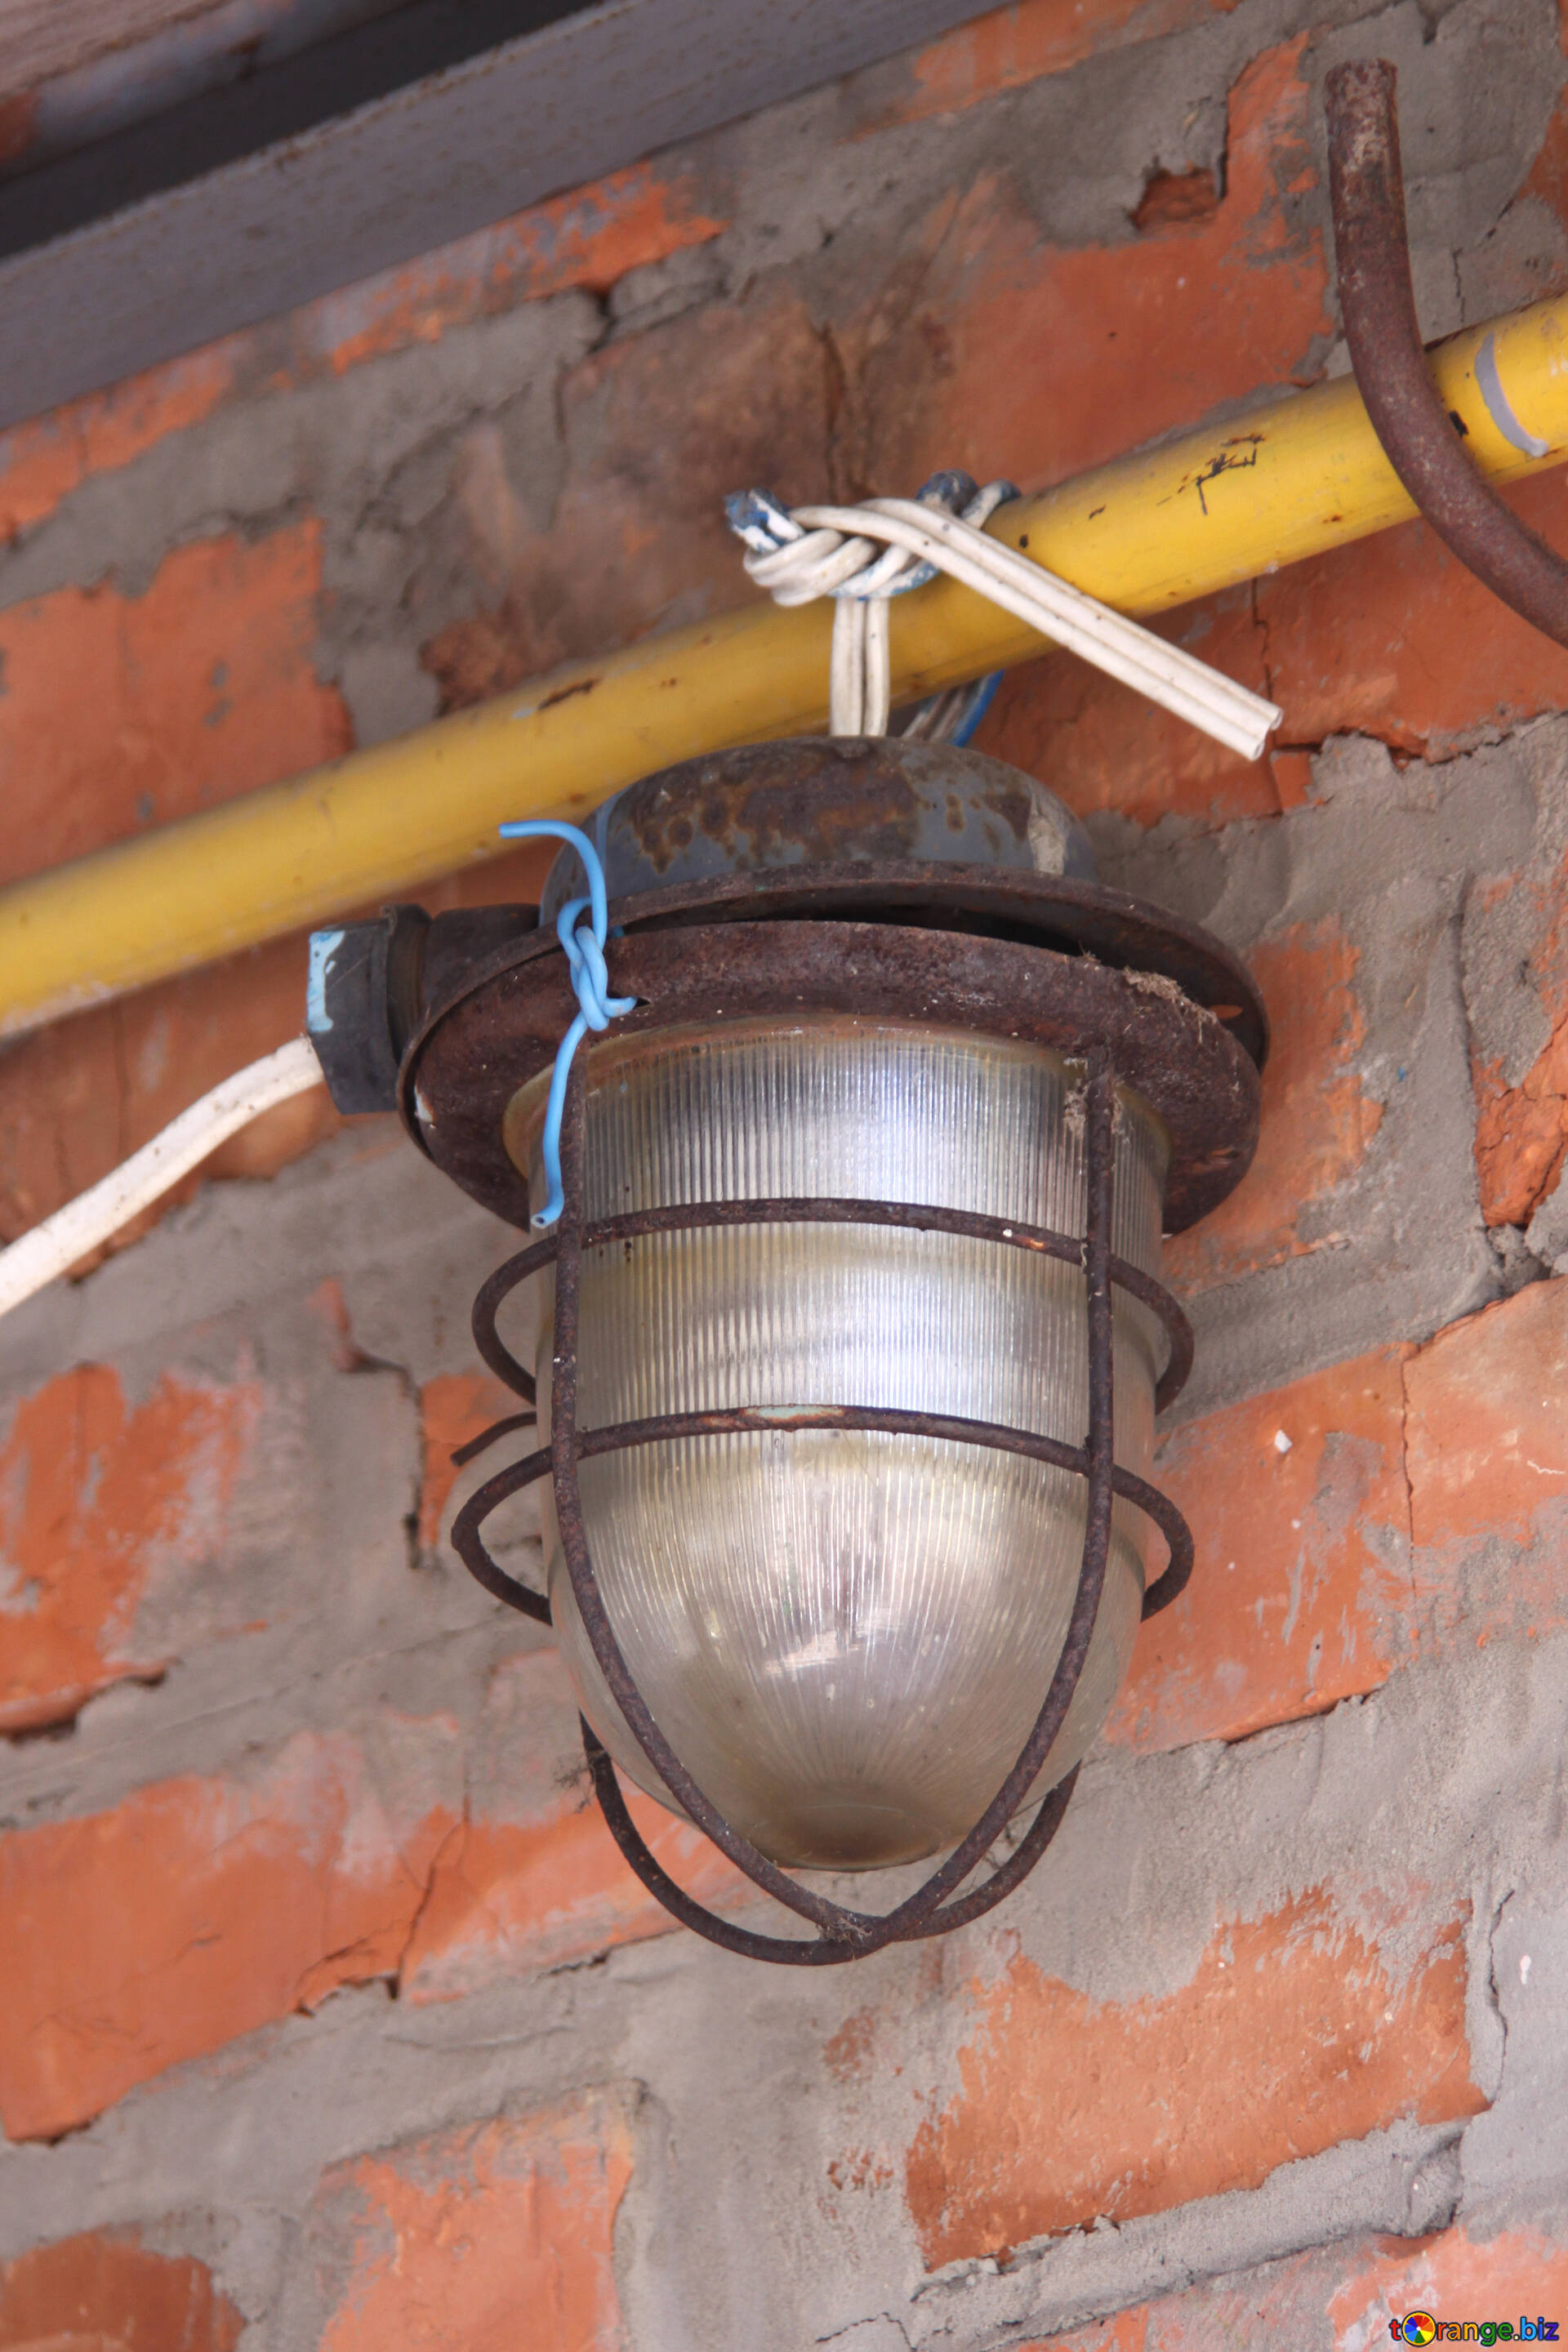 Electricity Street Lamps Waterproof Against Brick Wall On The Wire Wiring In Download Free Image Hd Wallpaper Size 1920px